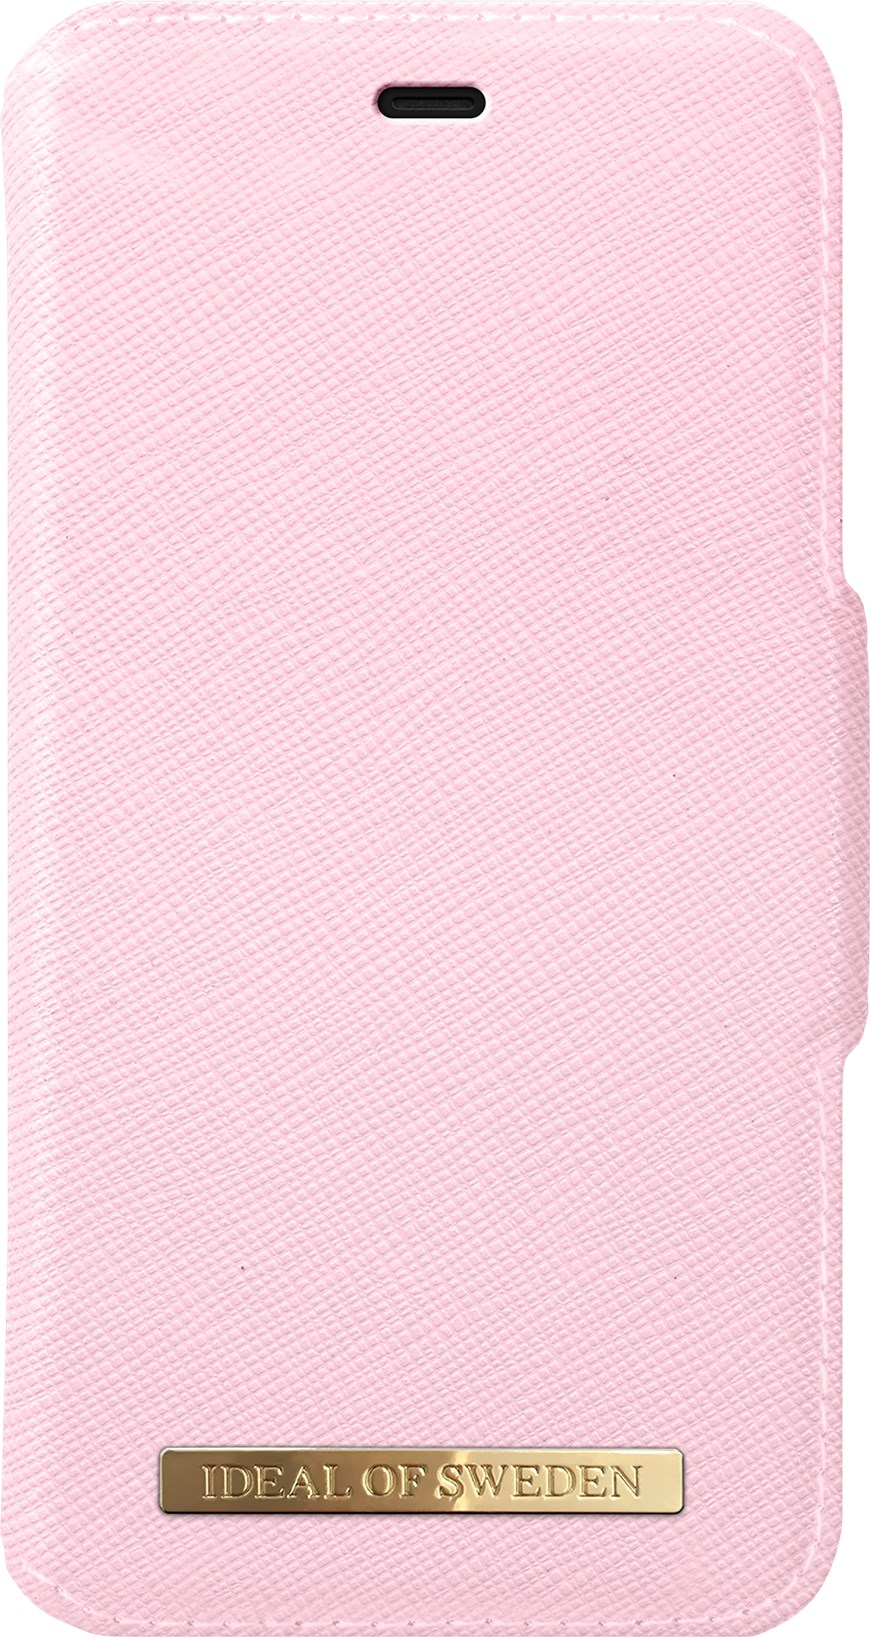 iDeal of Sweden Ideal Fashion Wallet Iphone 11 Pro Pink